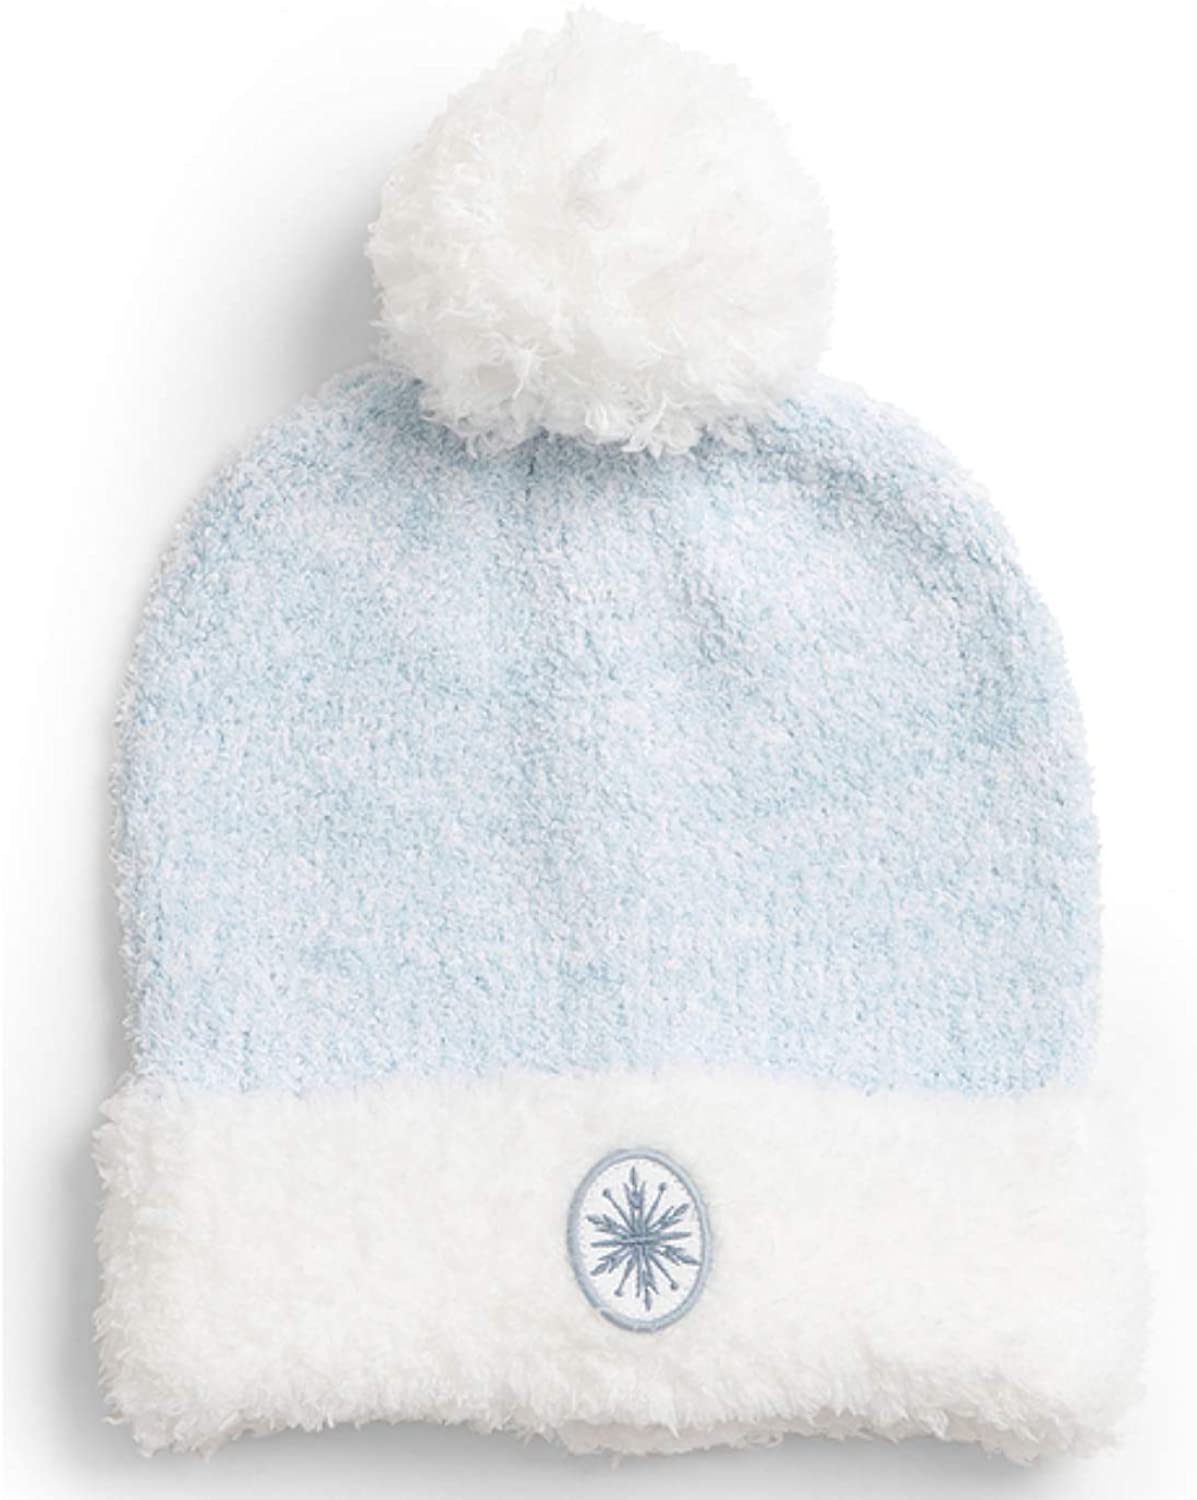 Barefoot Dreams CozyChic Frozen Disney Youth Slouchy Beanie, Beanie for Kids, Boy and Girl's Fashion Comfortable Fall and Winter Hat, Pom Pom- Heathered Ice Blue